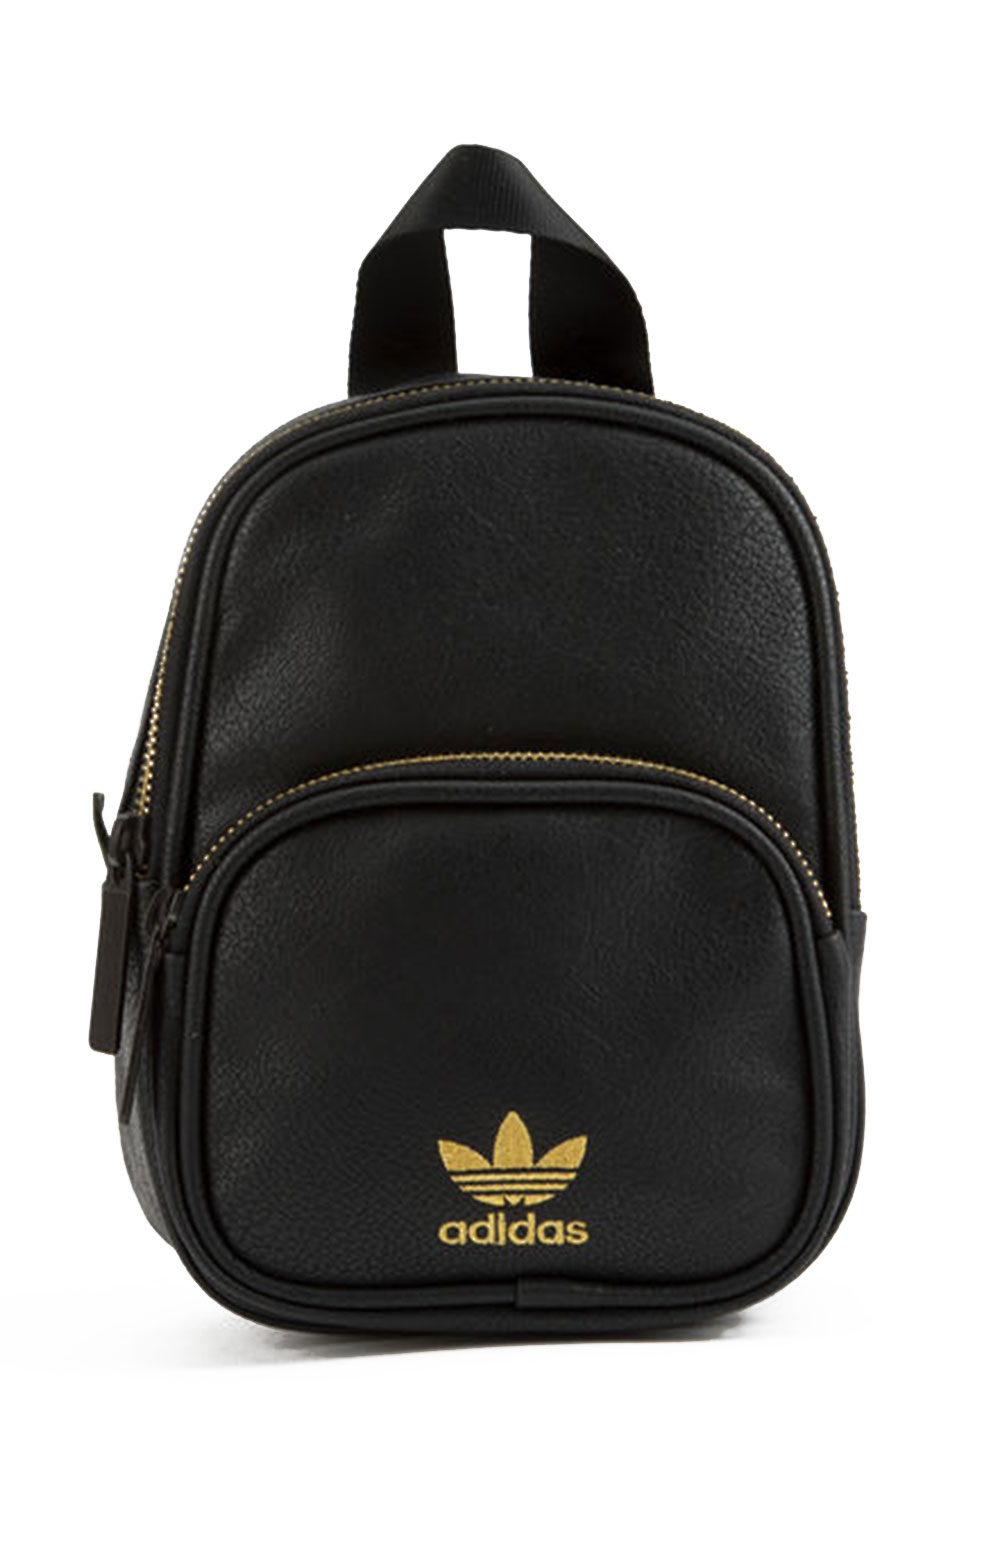 Mini PU Leather Backpack - Black/Gold